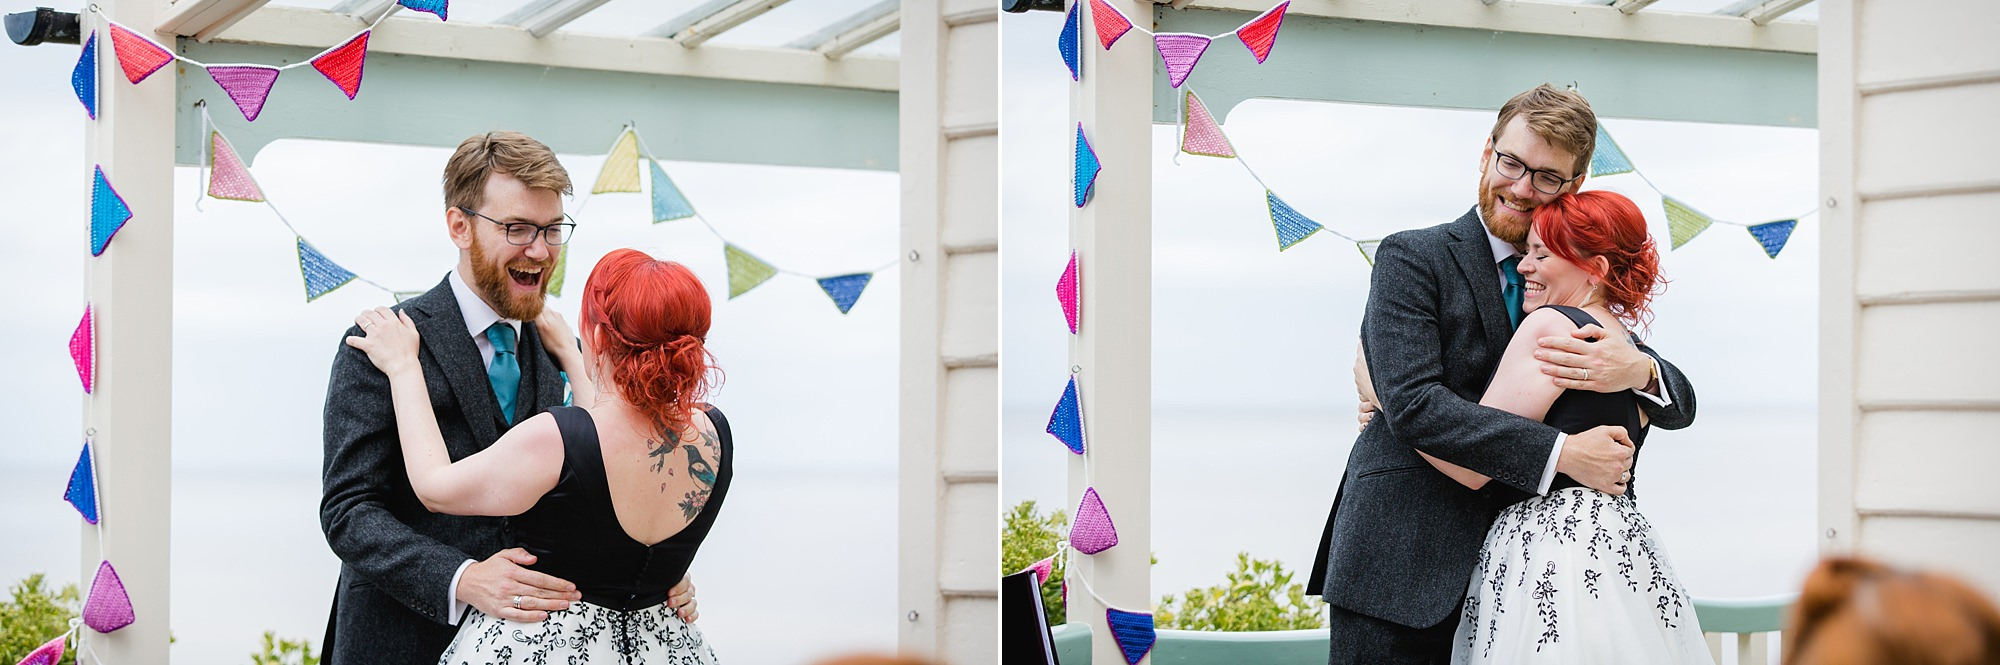 Beacon House wedding portrait of bride and groom laughing at each other during wedding ceremony